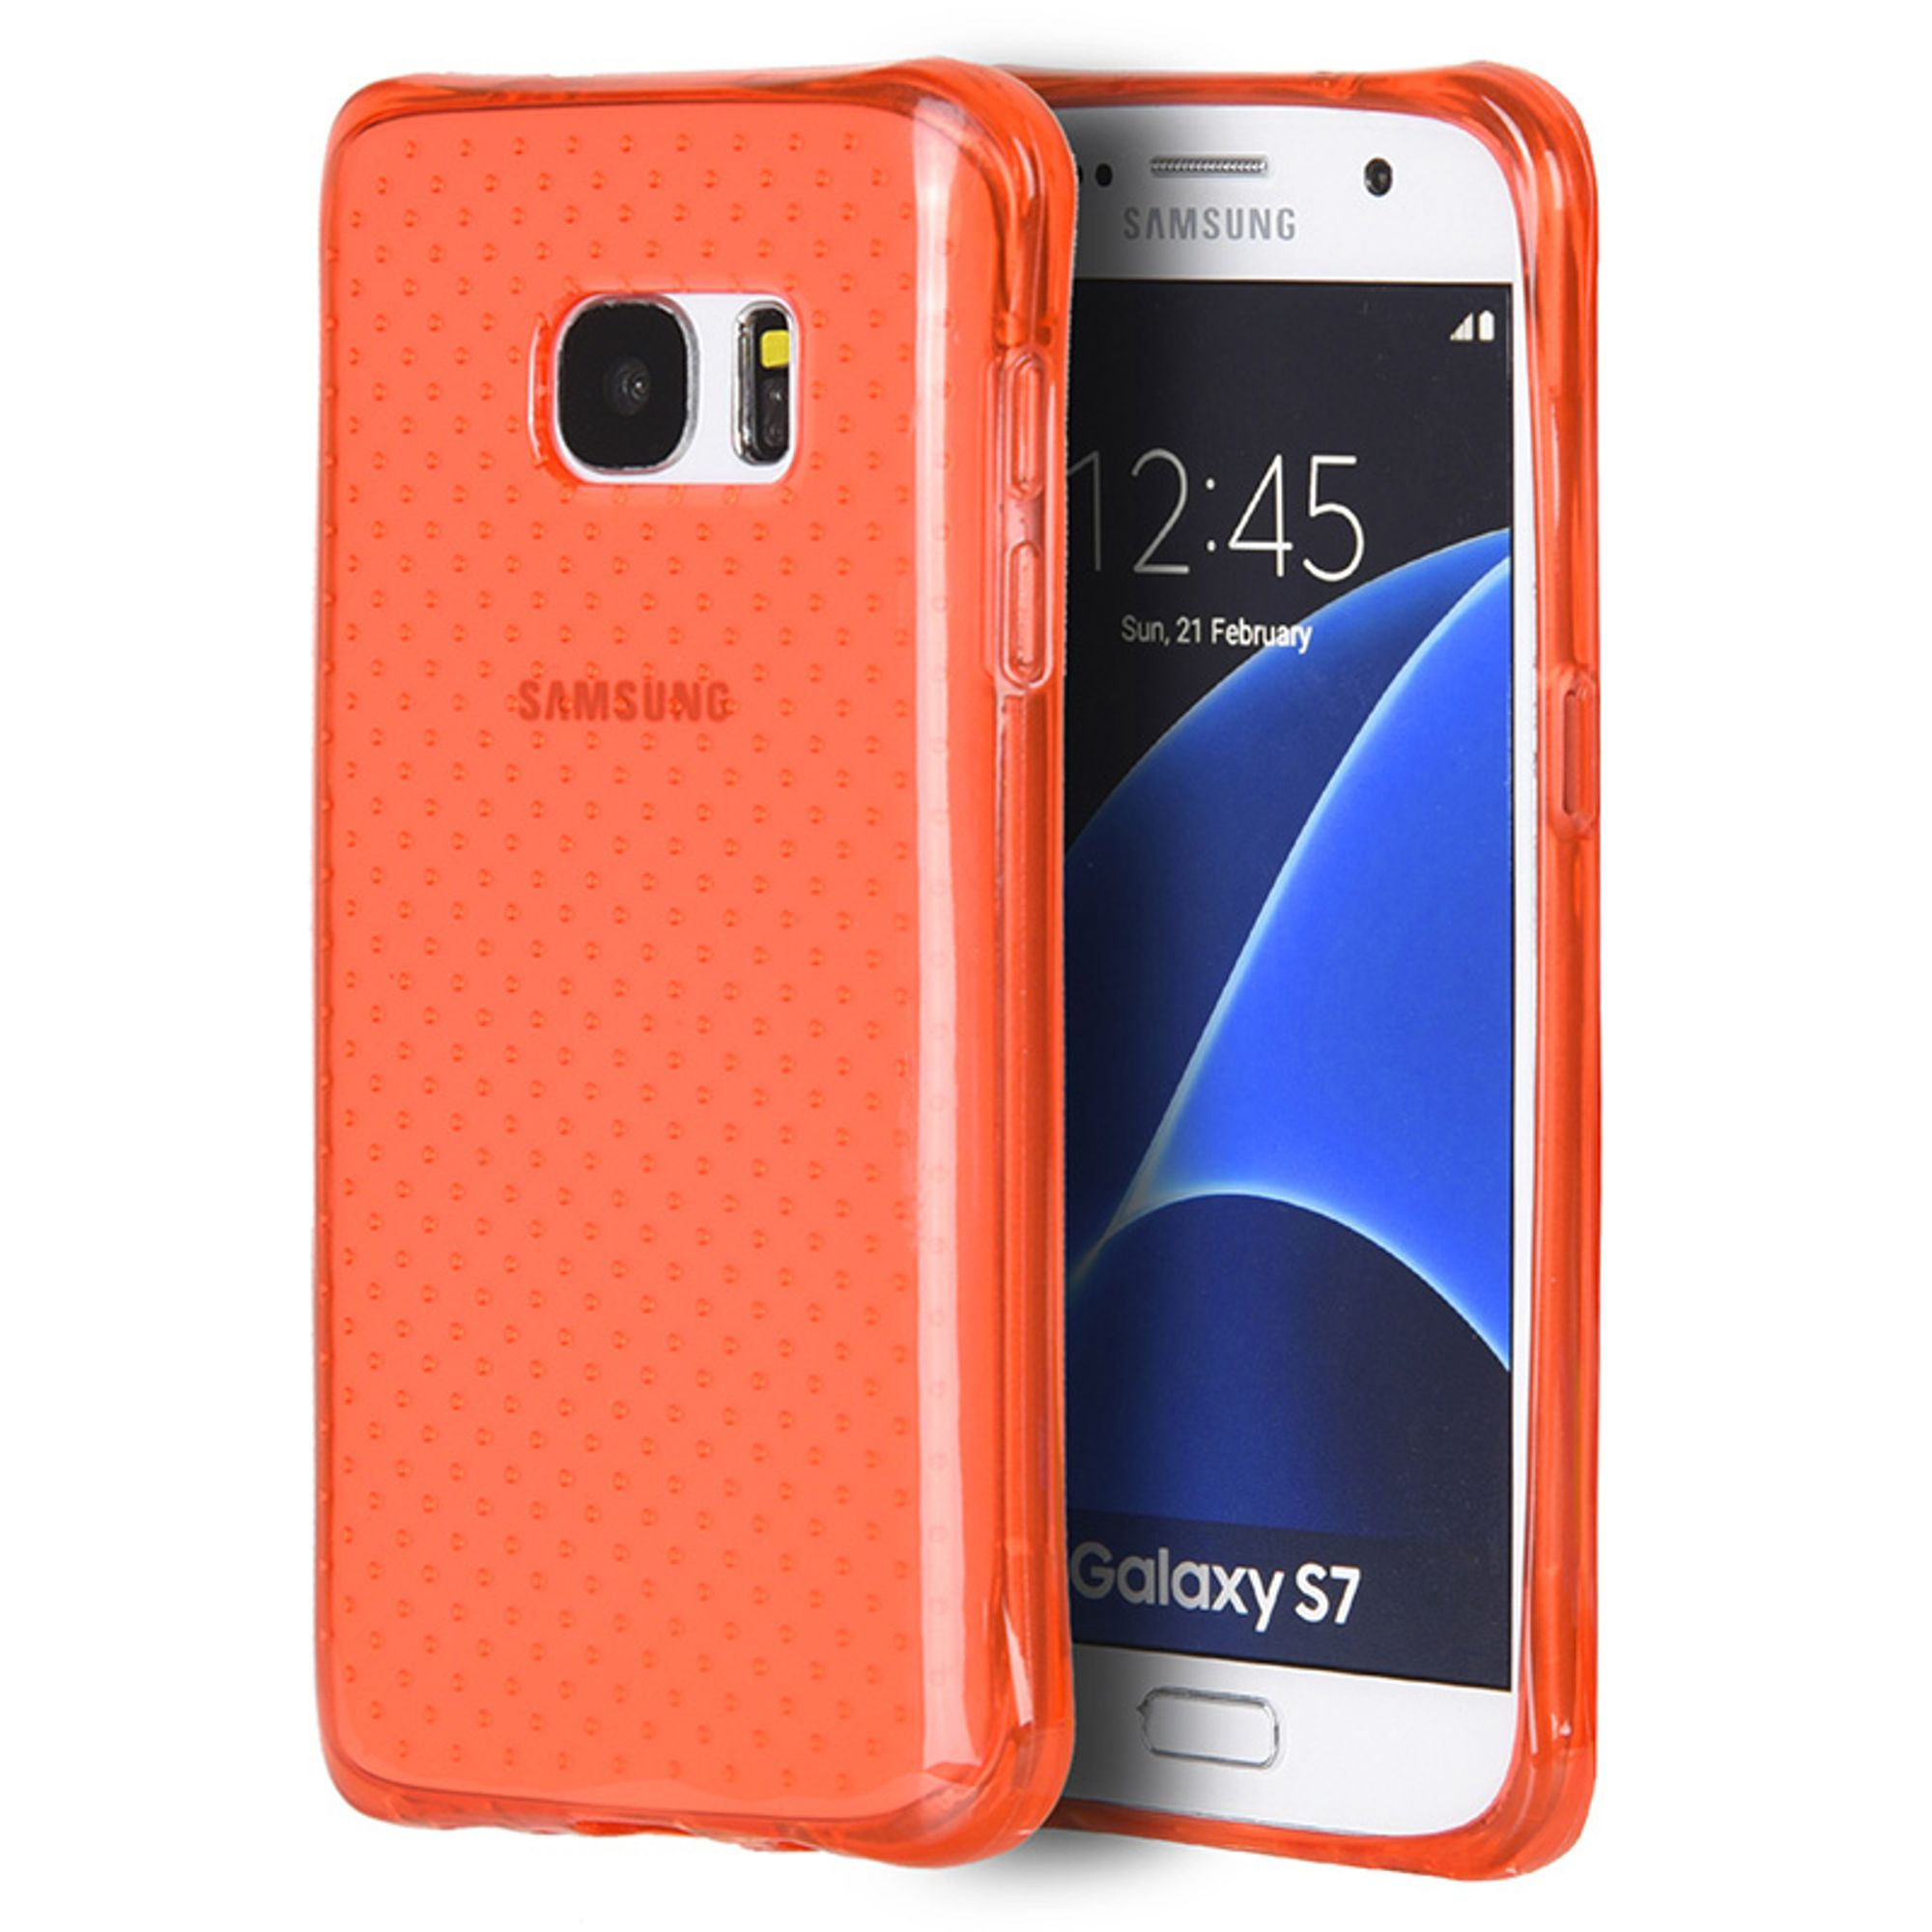 Samsung Galaxy S7 Case, by Insten Dots TPU Rubber Candy Skin Case Cover For Samsung Galaxy S7